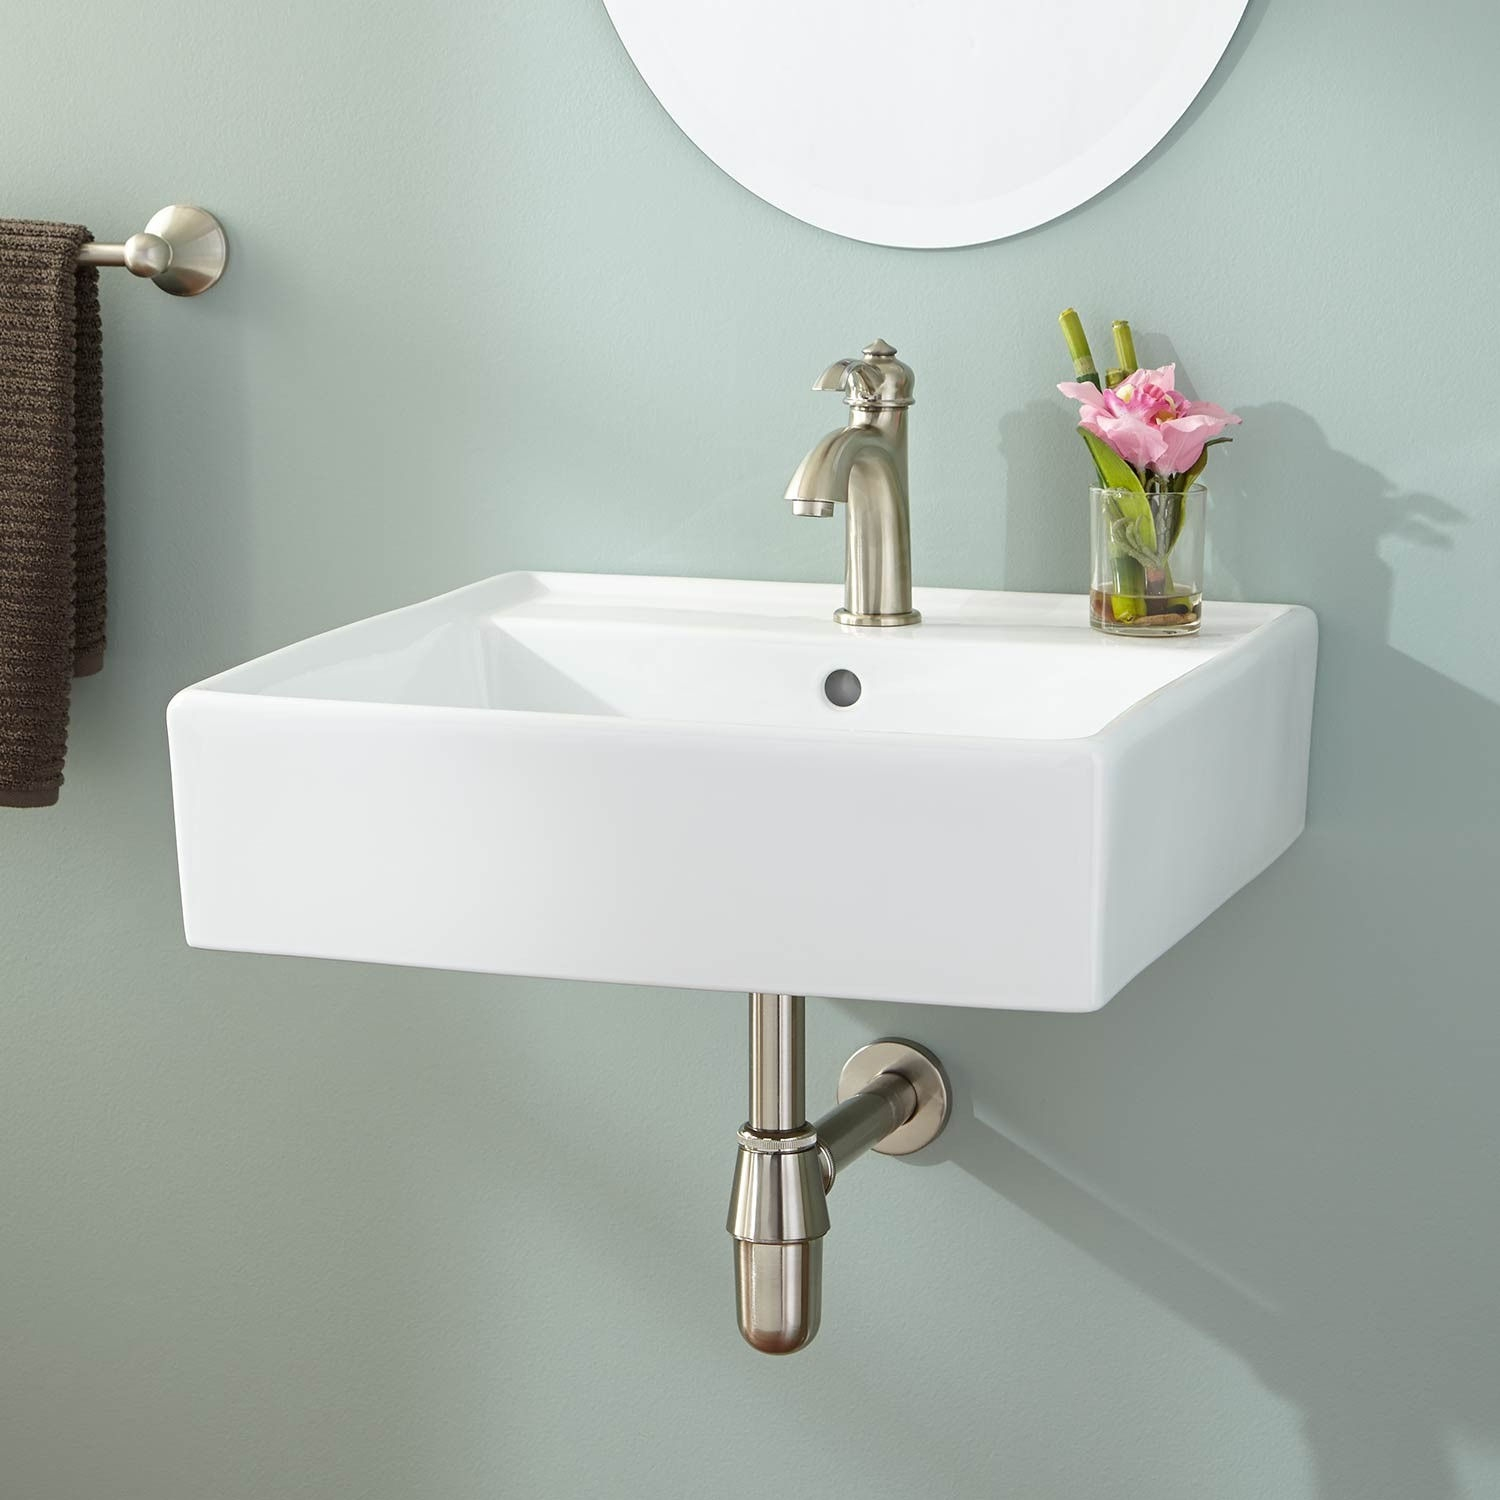 Wall Mount Bathroom Sink Images